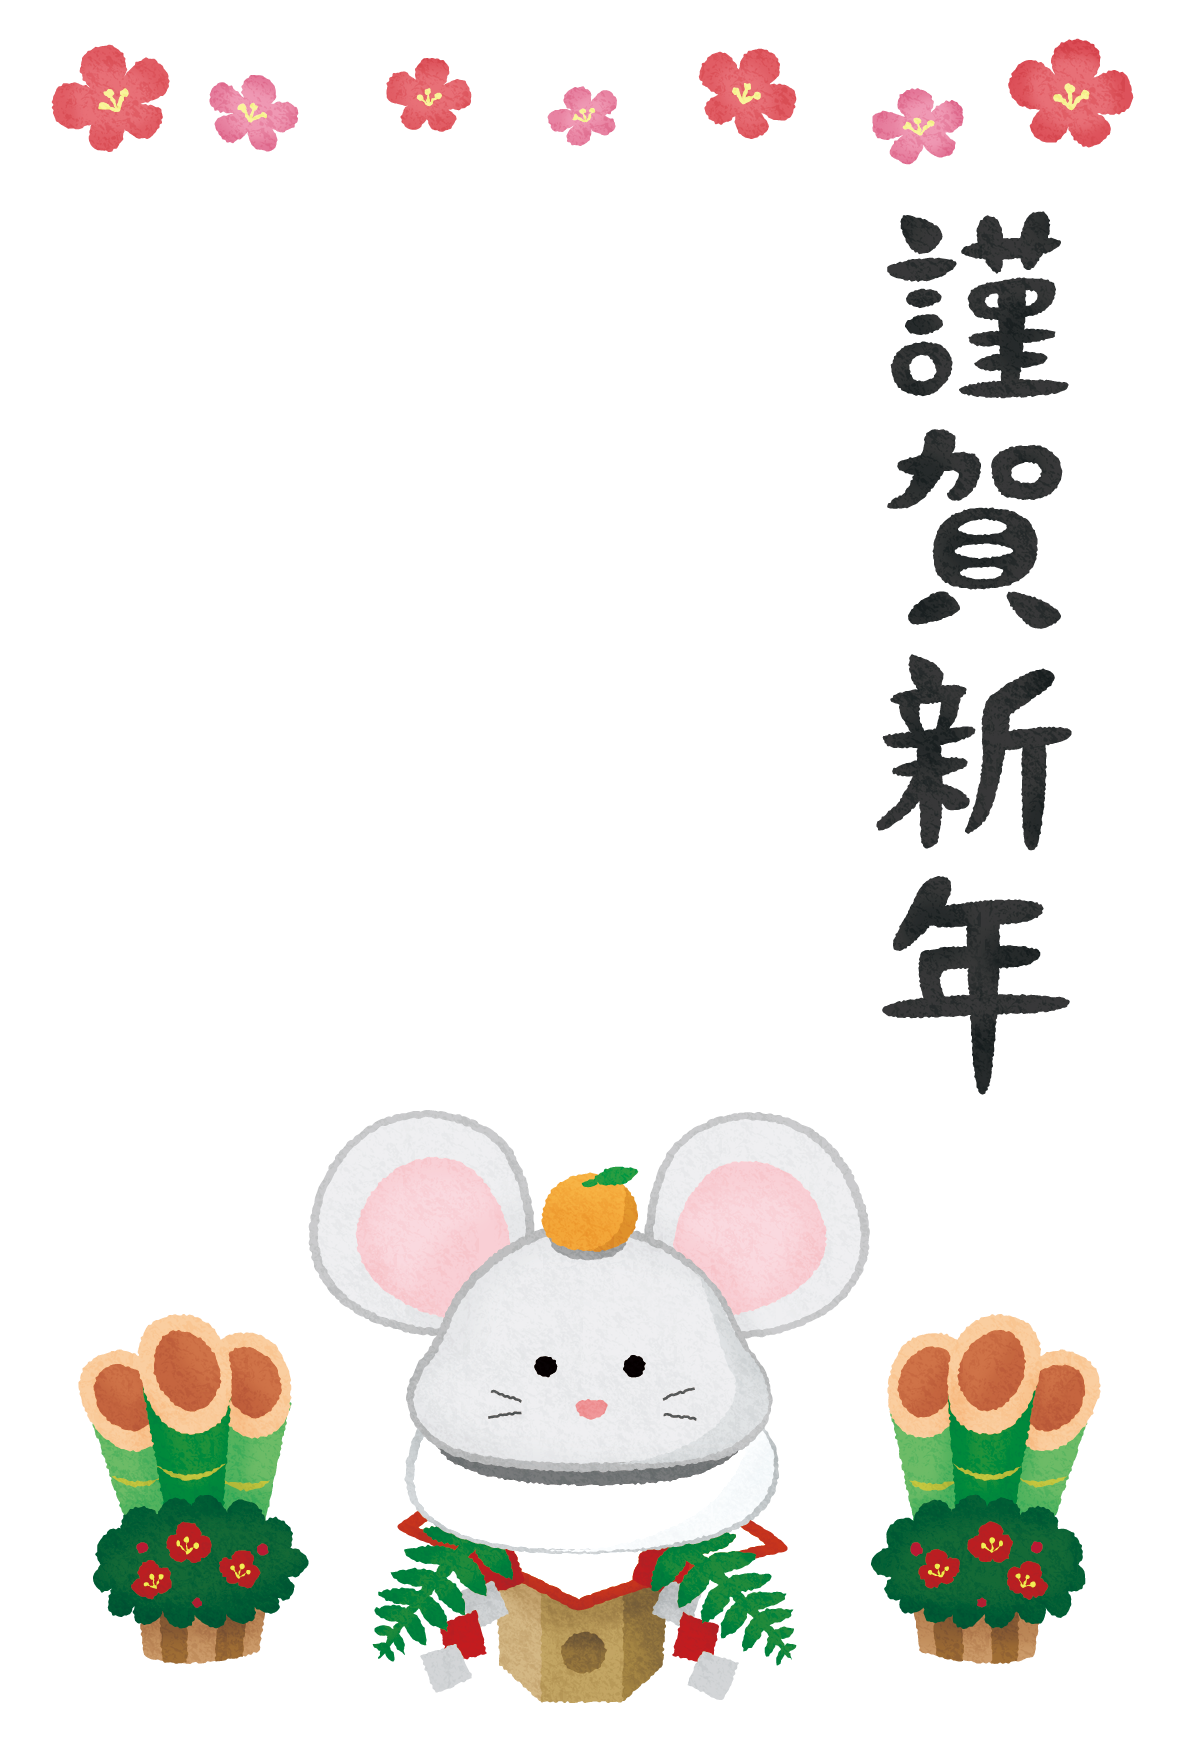 Kingashinnen Card Free Template (Rat kagami mochi)